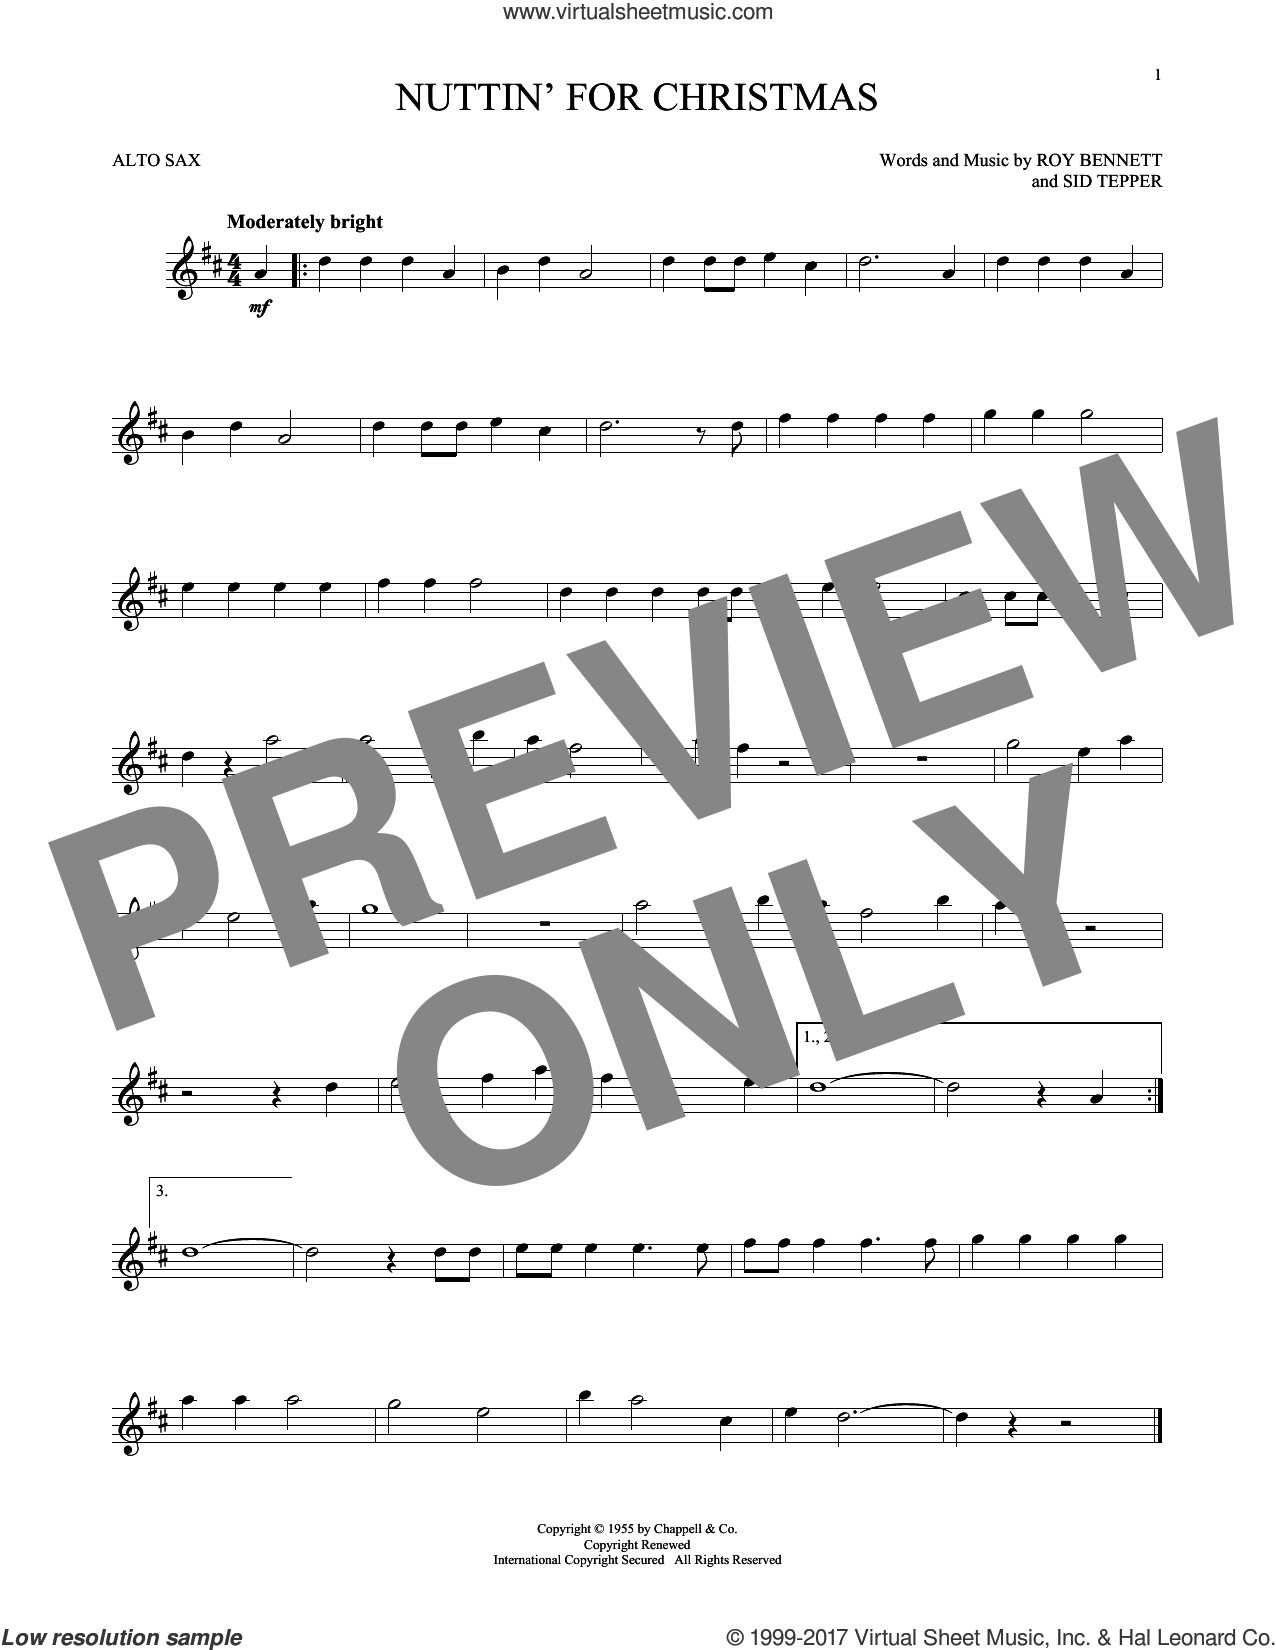 Nuttin' For Christmas sheet music for alto saxophone solo by Sid Tepper and Roy Bennett, intermediate. Score Image Preview.